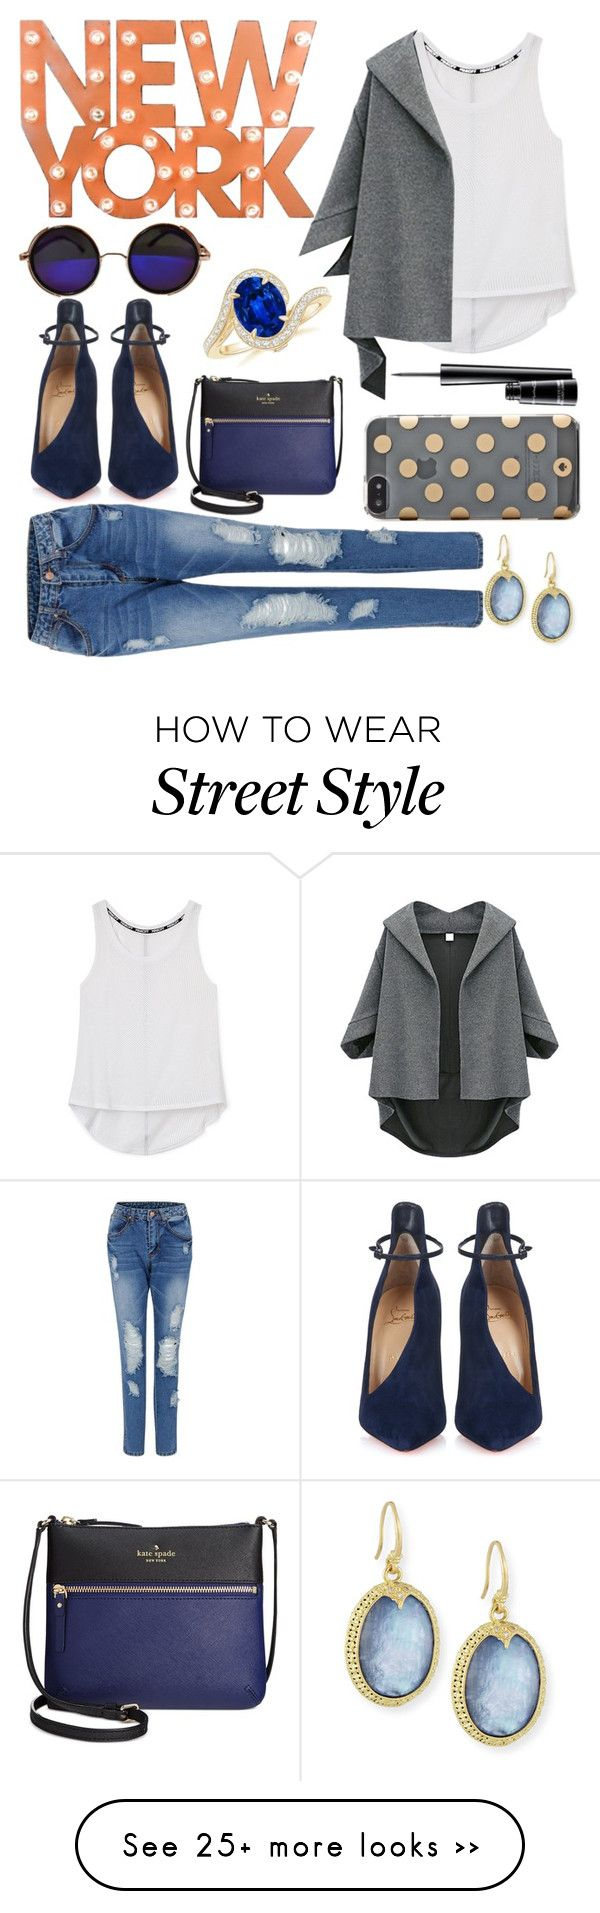 """""""Street Style"""" by jeesxx on Polyvore featuring Dot & Bo, Kate Spade, Rebecca Minkoff, Christian Louboutin, Armenta and MAC Cosmetics"""